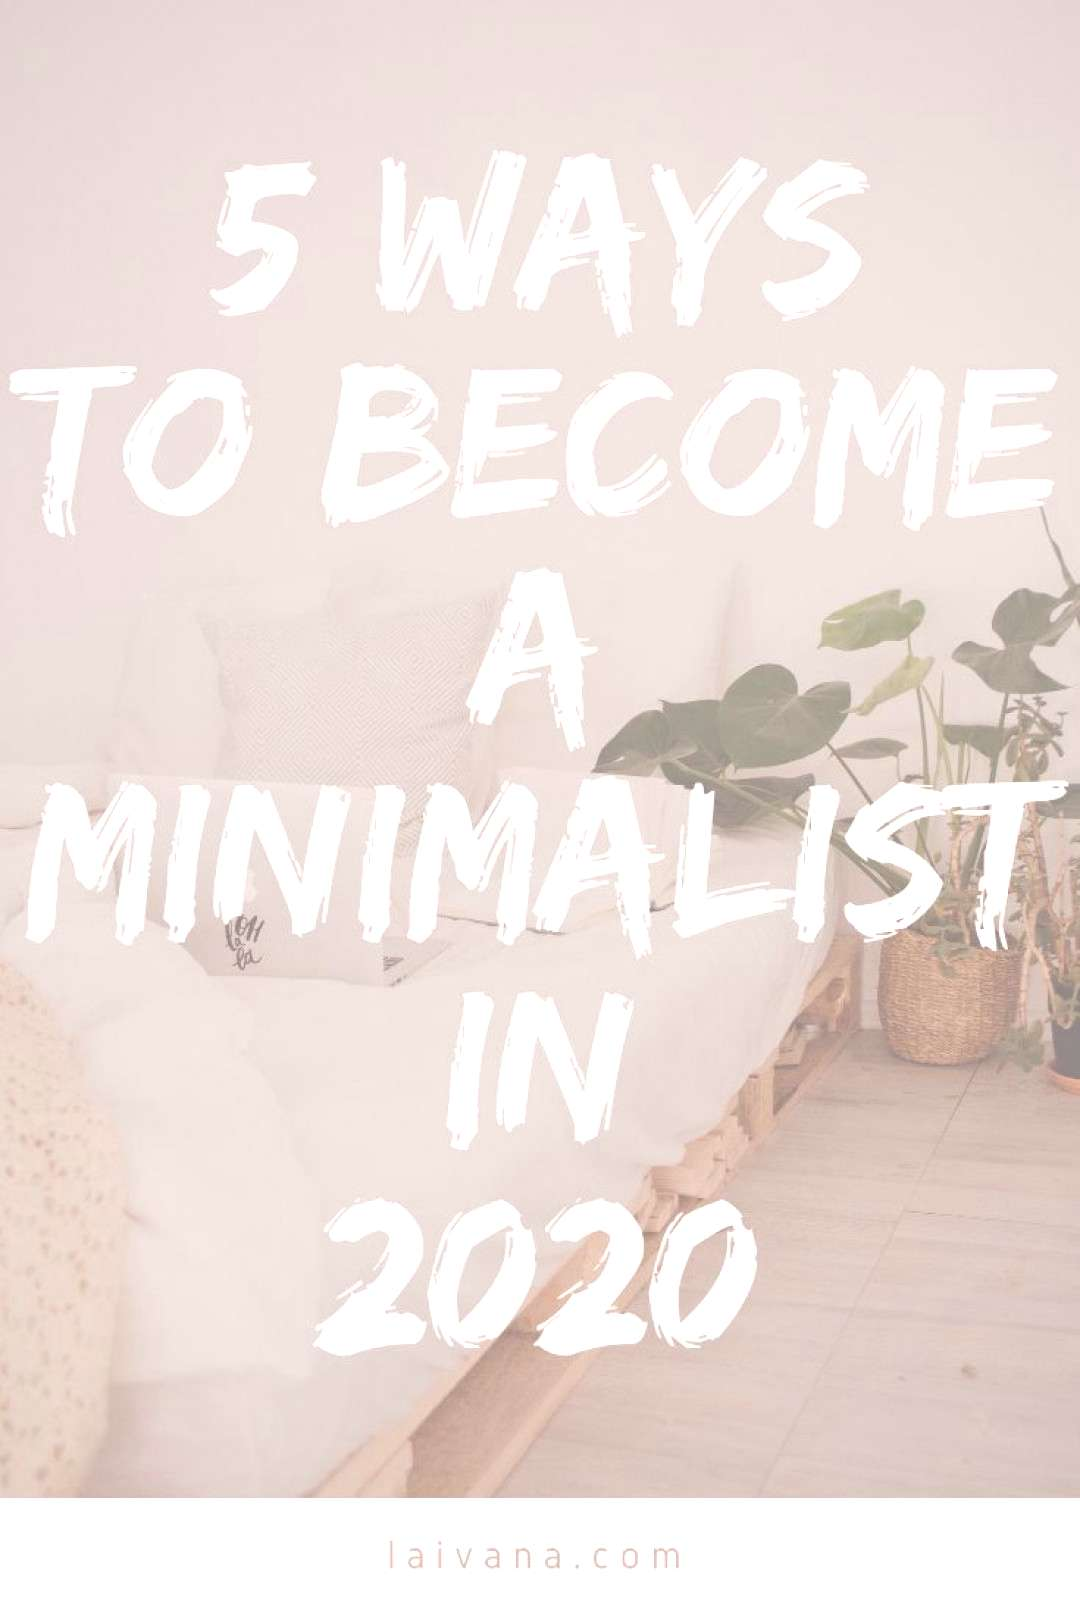 Minimalist Lifestyle for Beginners - How to Get Started 5 Ways to Become a Minimalist and Start You